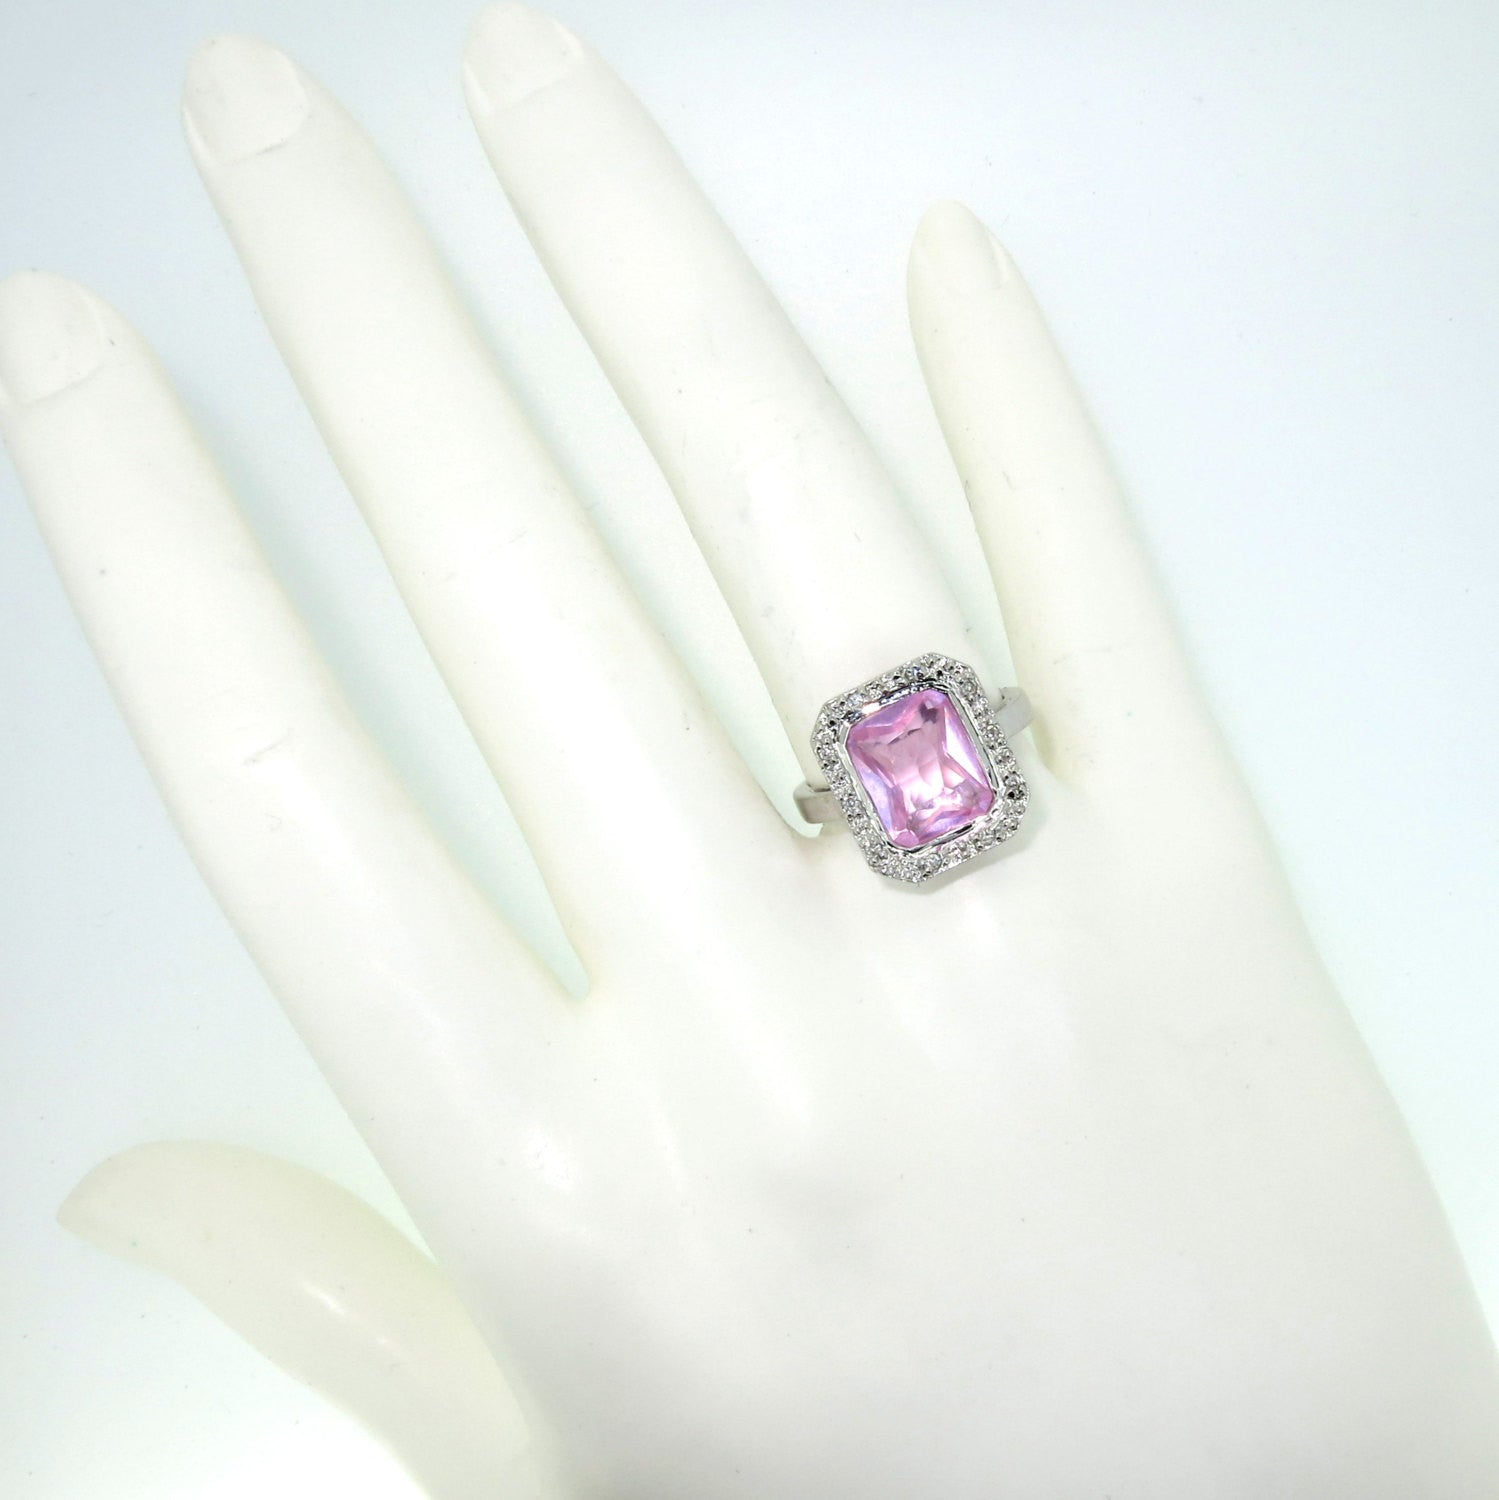 Pink Quartz & Diamond Engagement Ring, Gemstone Ring, Anniversary Ring, Cocktail Ring